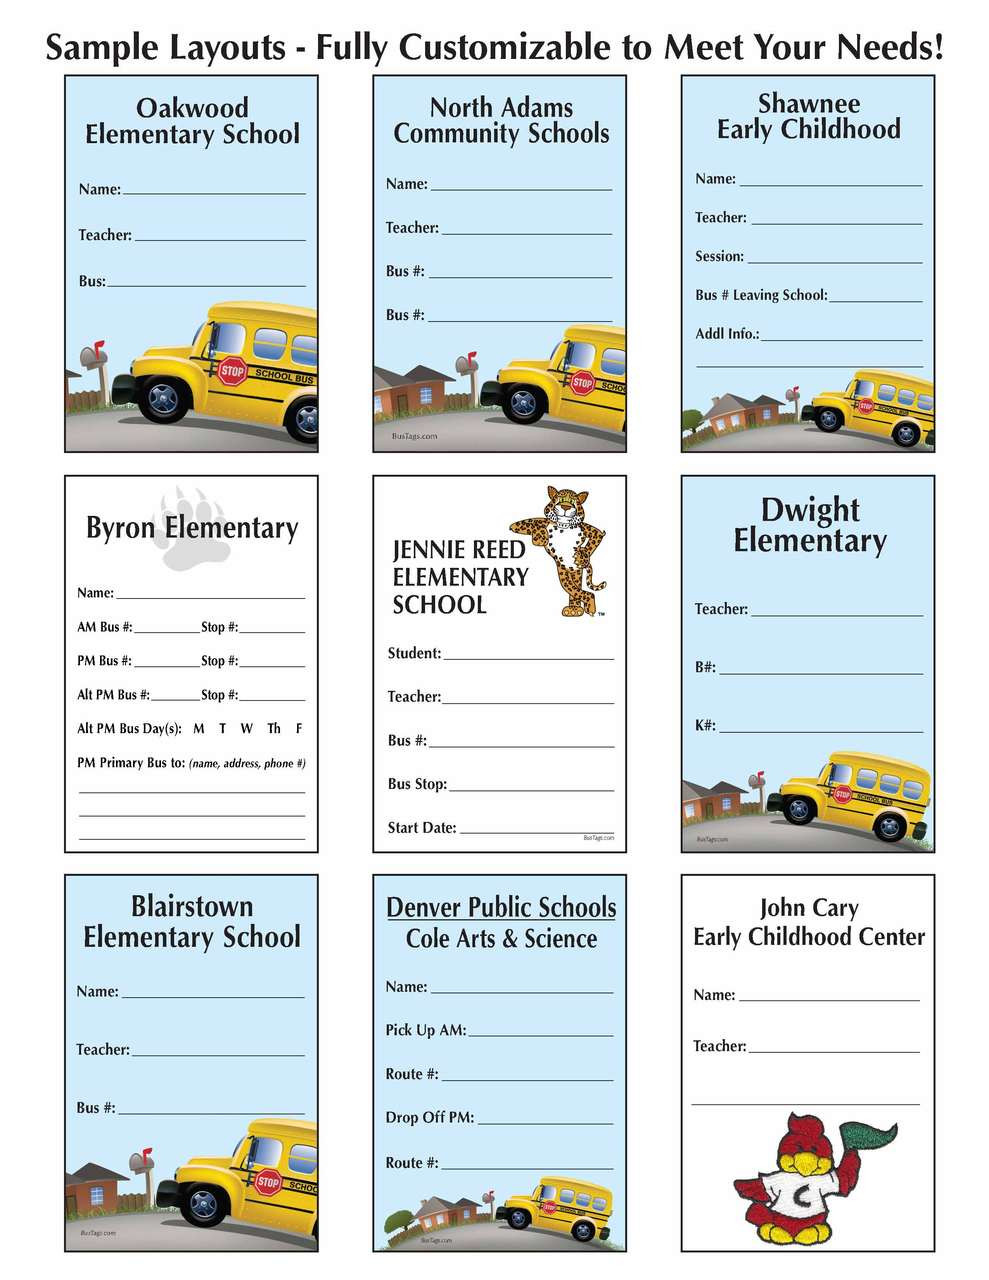 Student Bus Tag ID (446) Sample Sheet